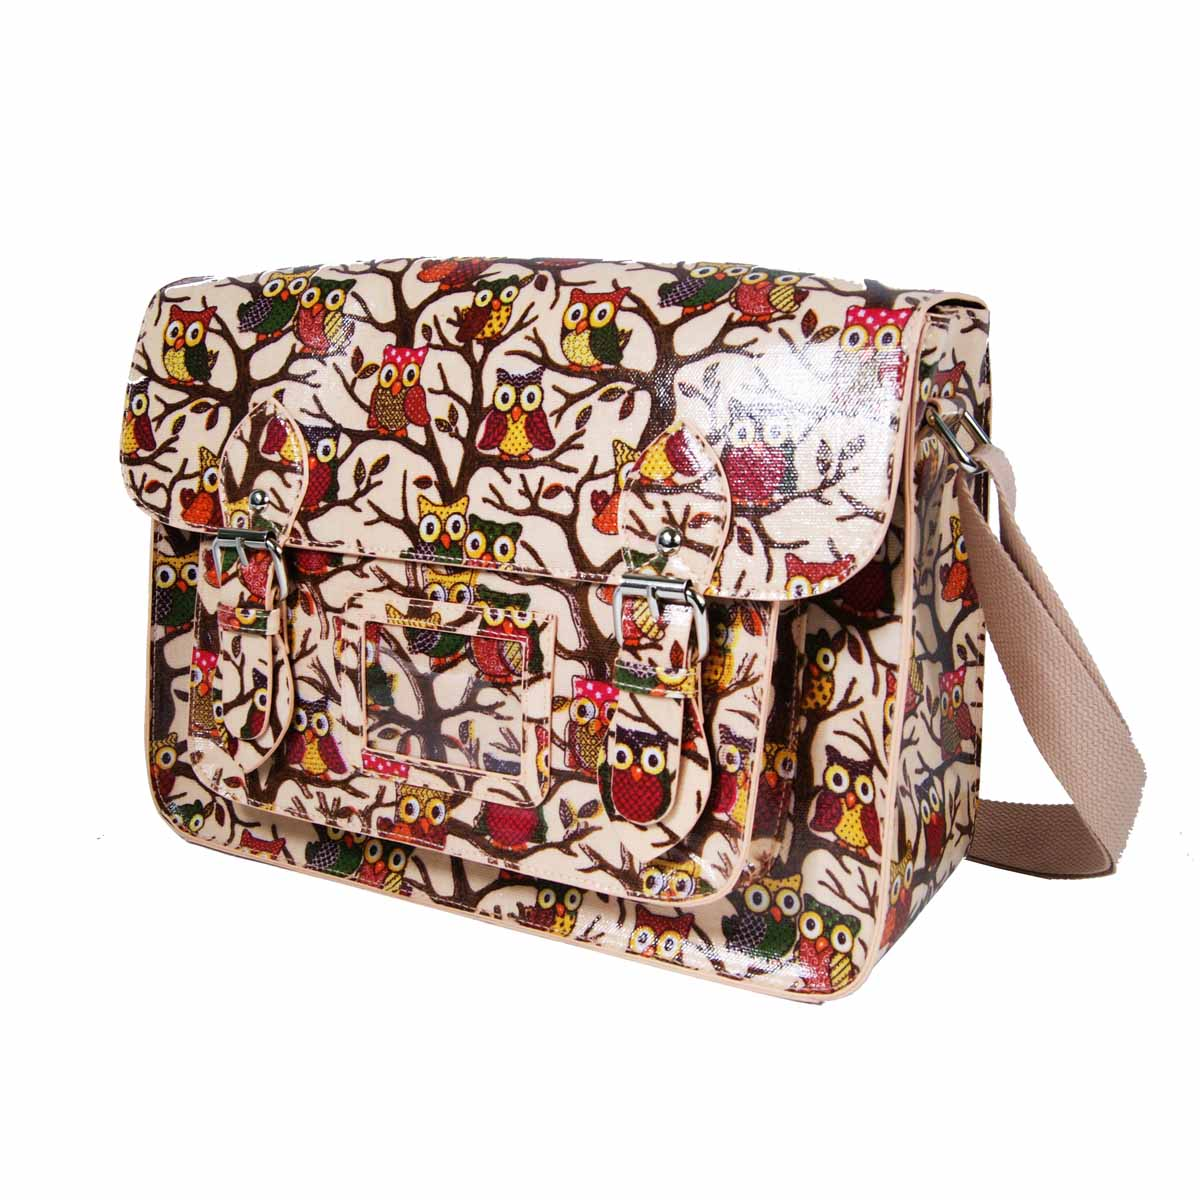 owl purse purses online shopping black purse